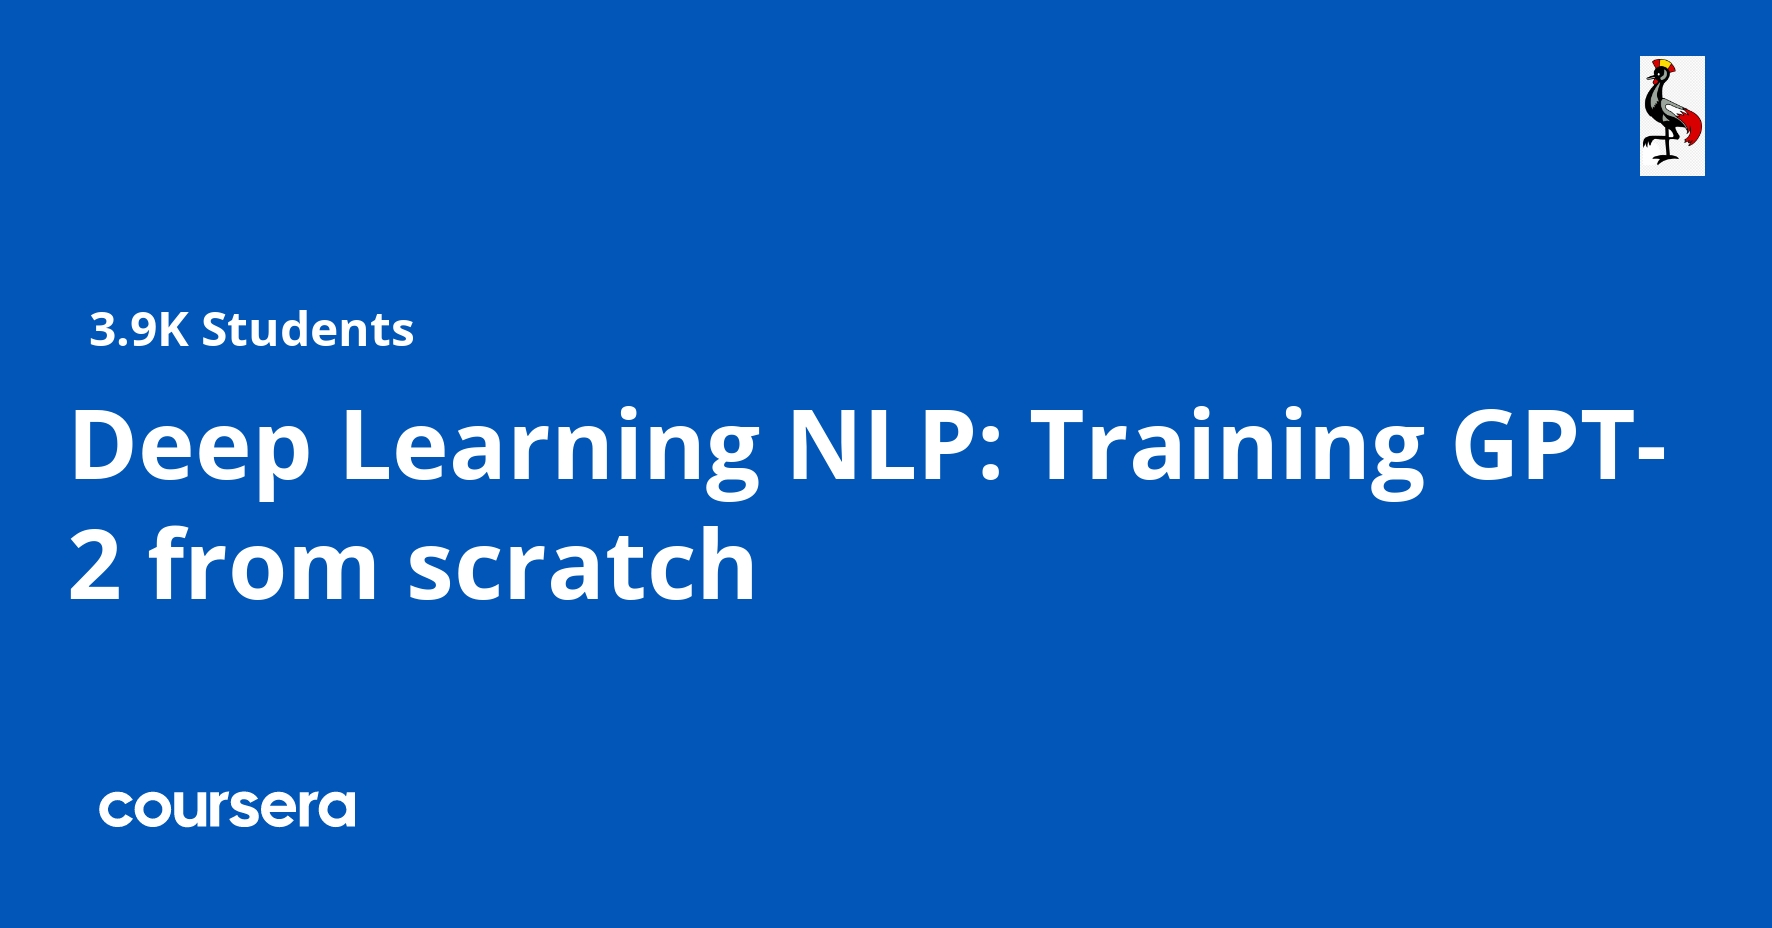 Deep Learning NLP: Training GPT-2 from scratch